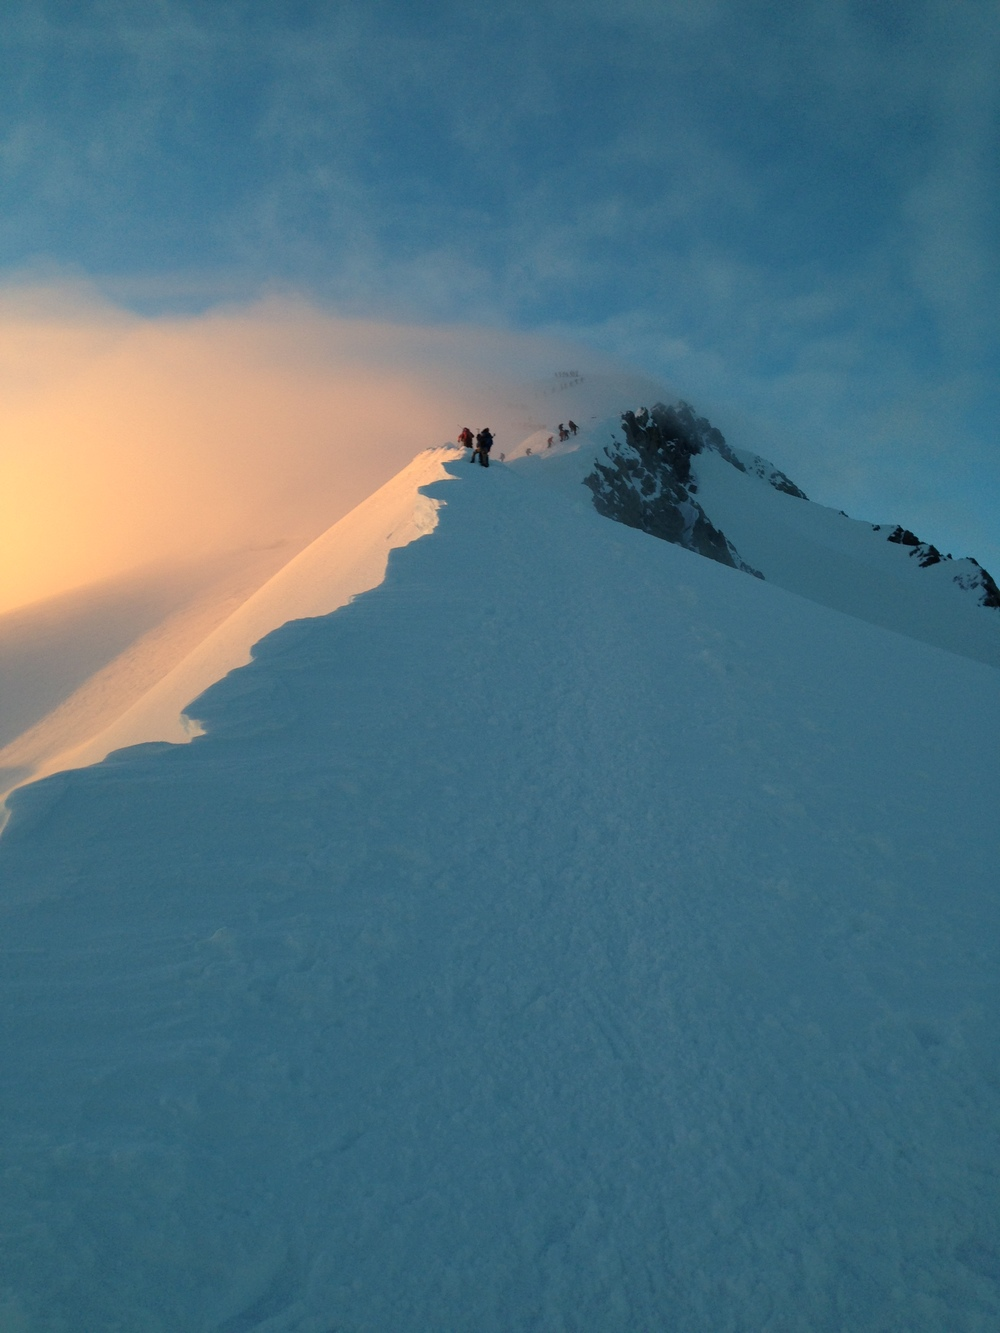 Approaching the summit of Mont Blanc on the Gouter route. Photo credit: Laurence Monnoyeur